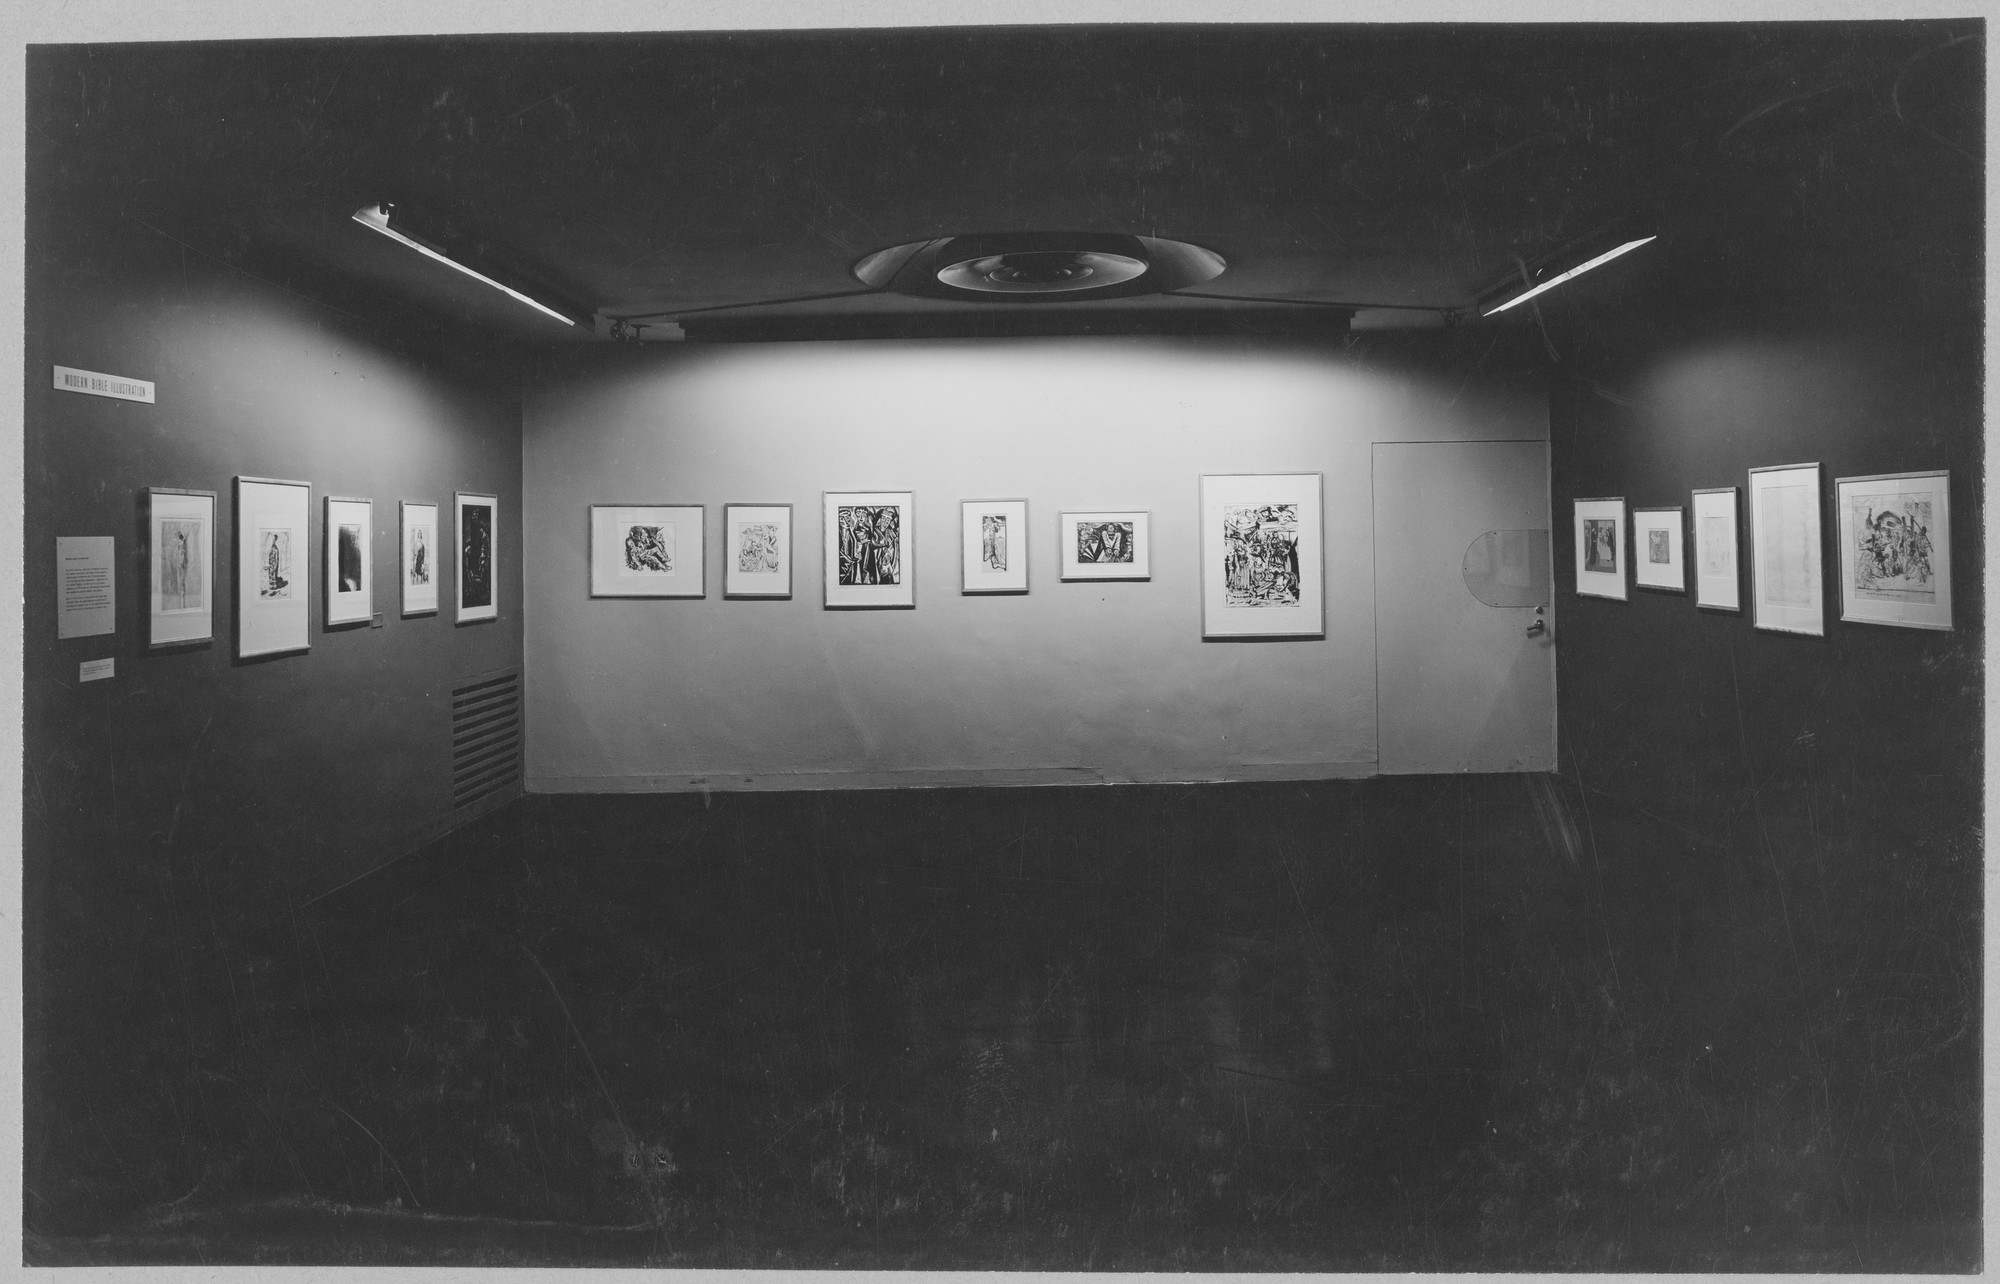 "Installation view of the exhibition, ""Modern Bible Illustration."" July 18, 1951–August 19, 1951. Photographic Archive. The Museum of Modern Art Archives, New York. IN484.1. Photograph by Soichi Sunami."